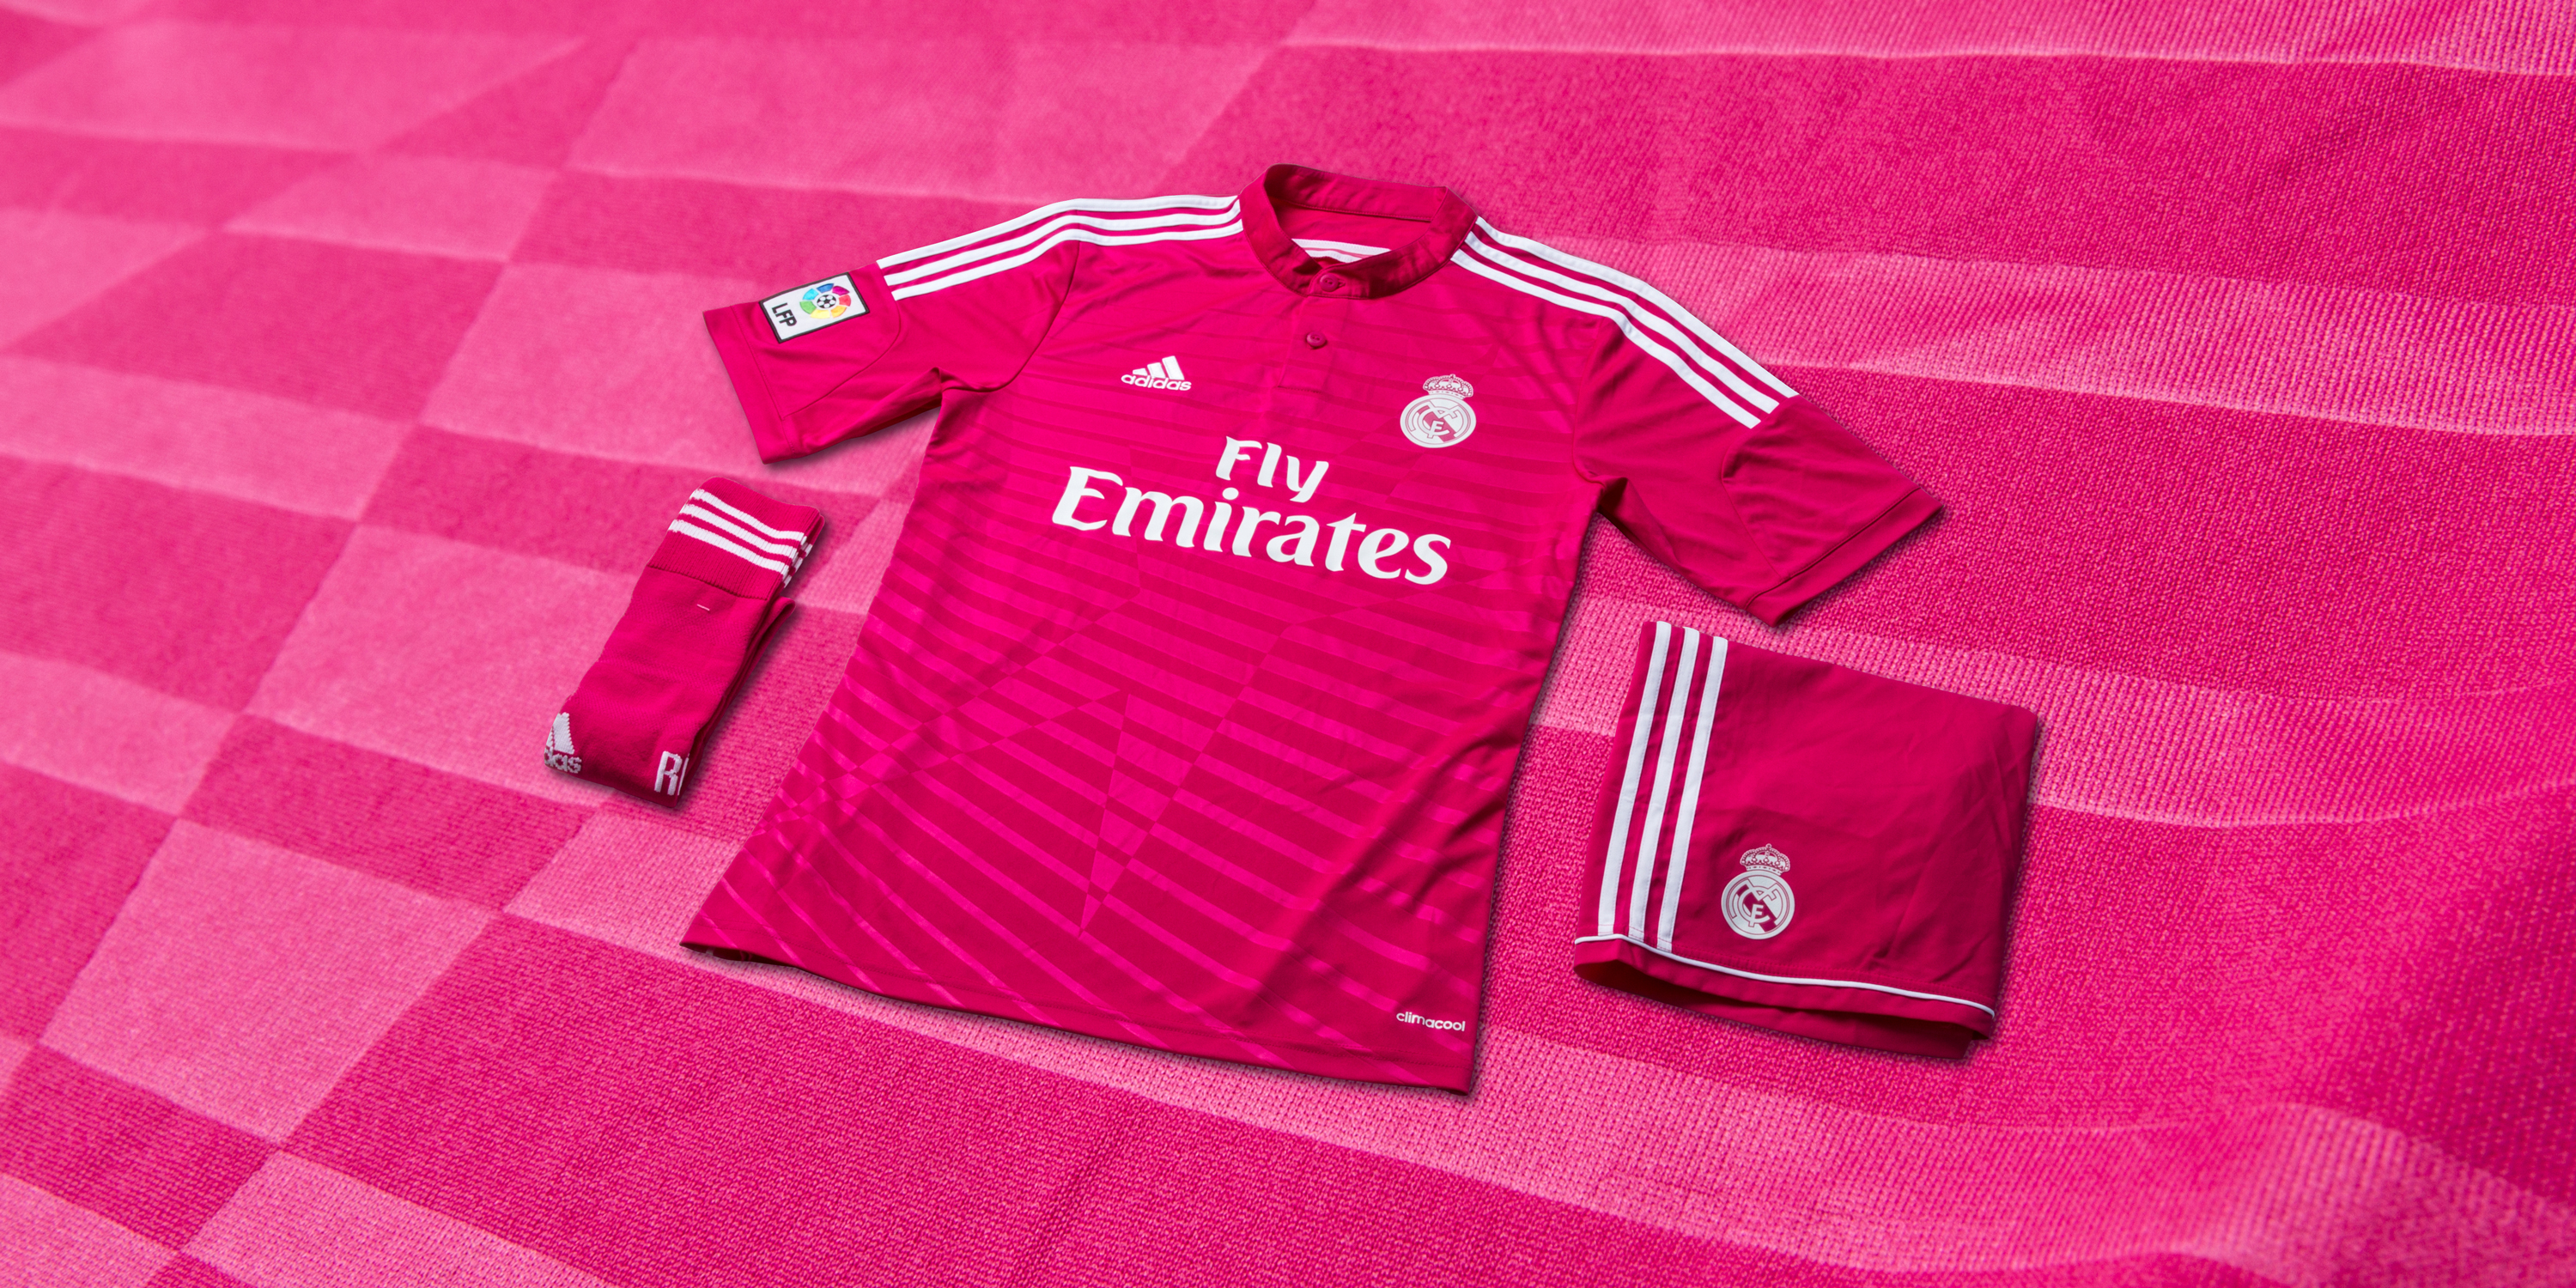 adidas-real-madrid-away-kit-silhouette-laydown